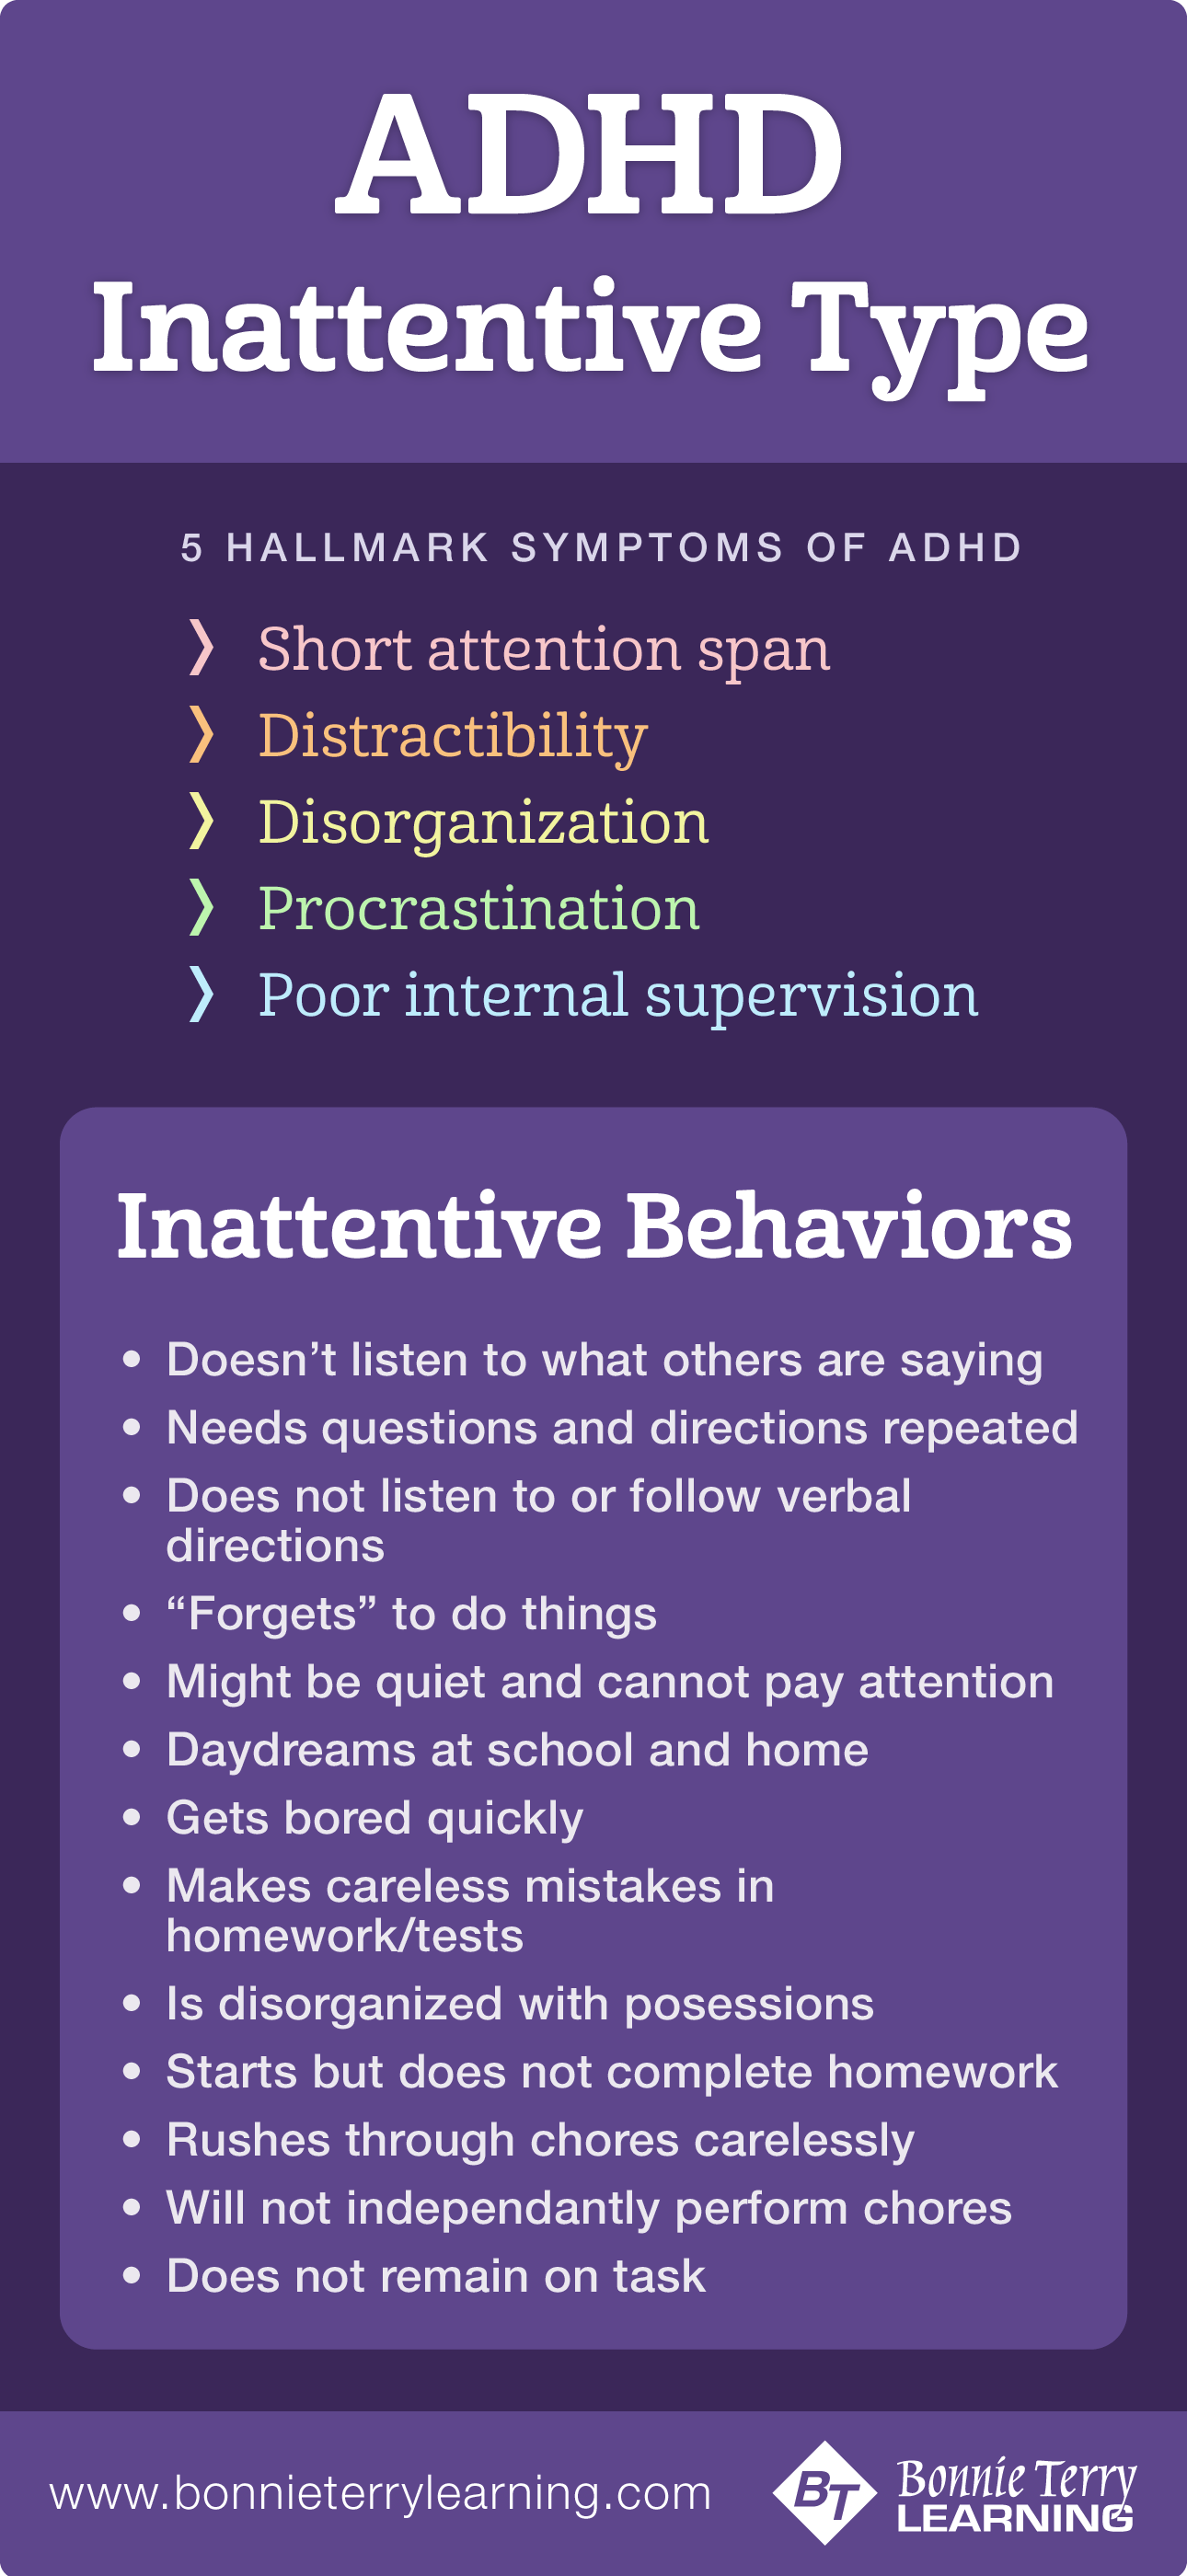 3 Adhd Subtyptes Inattentive Hyperactive Impulsive And